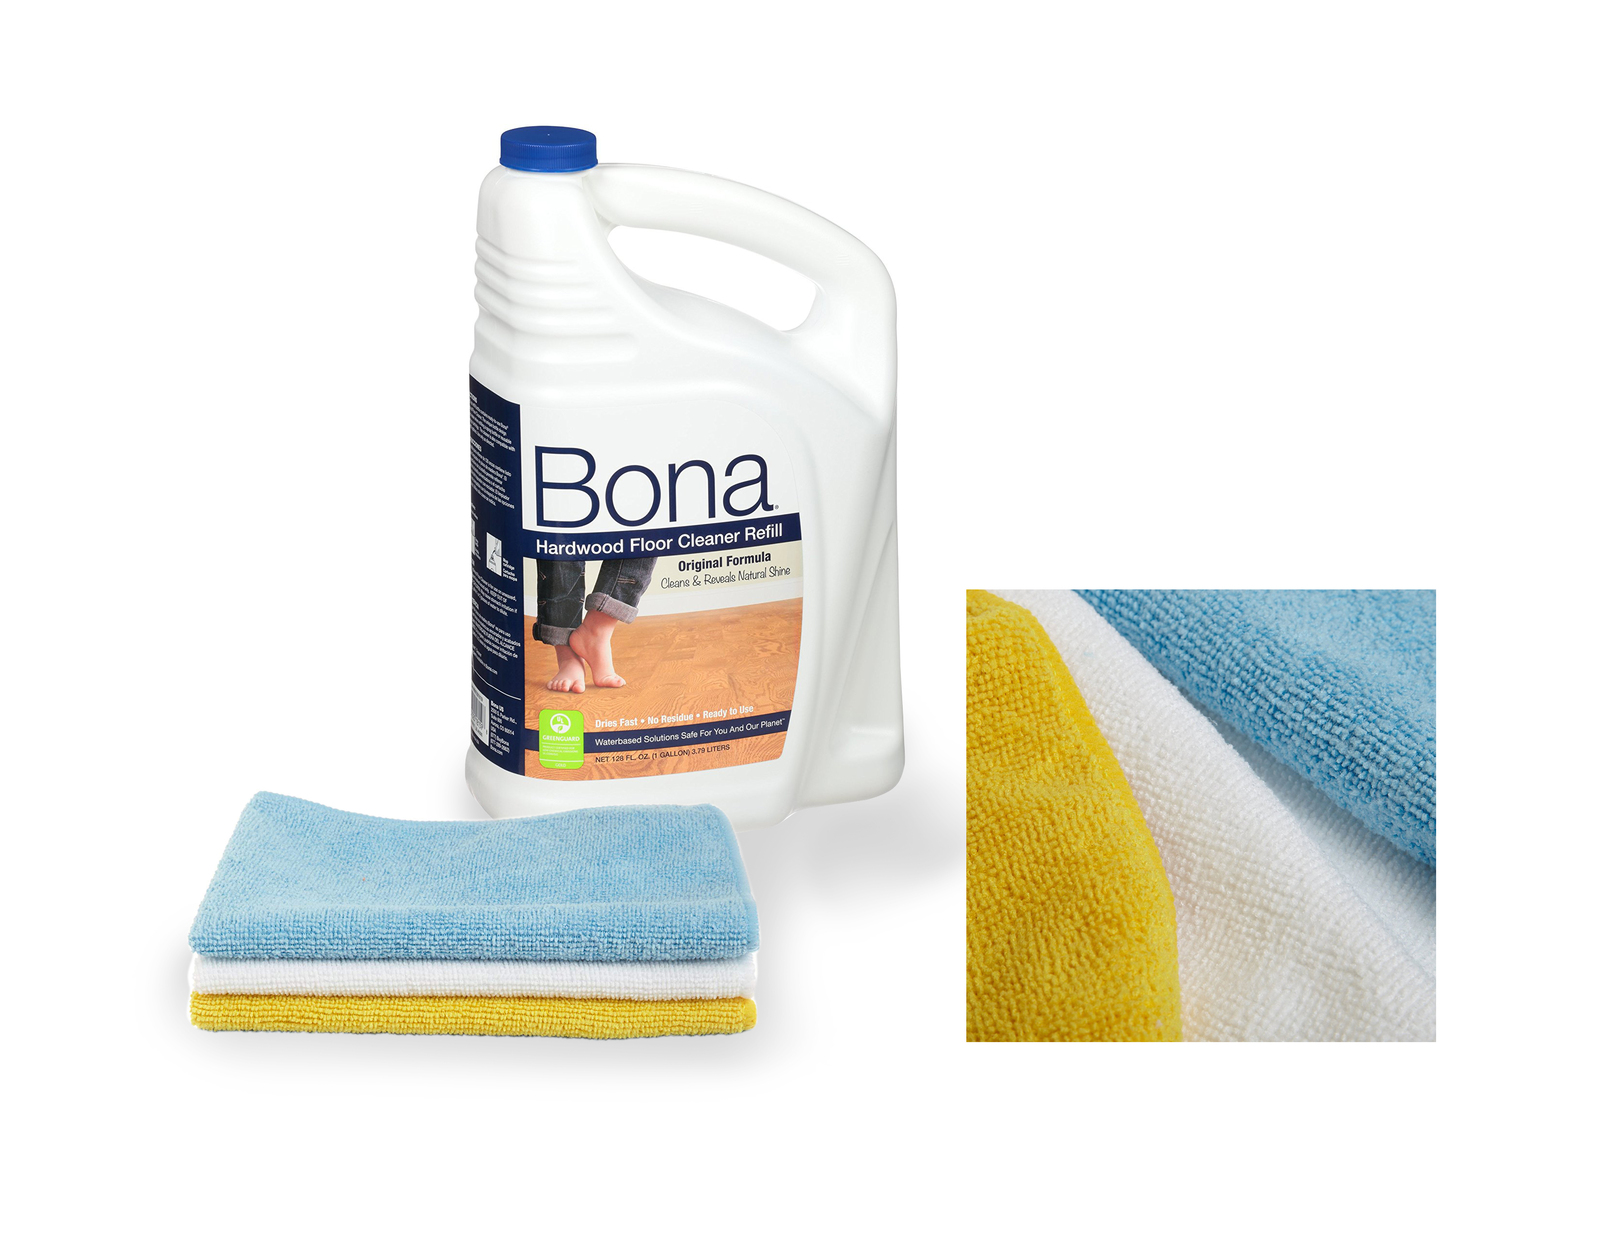 Bona 128 oz front with three microfiber